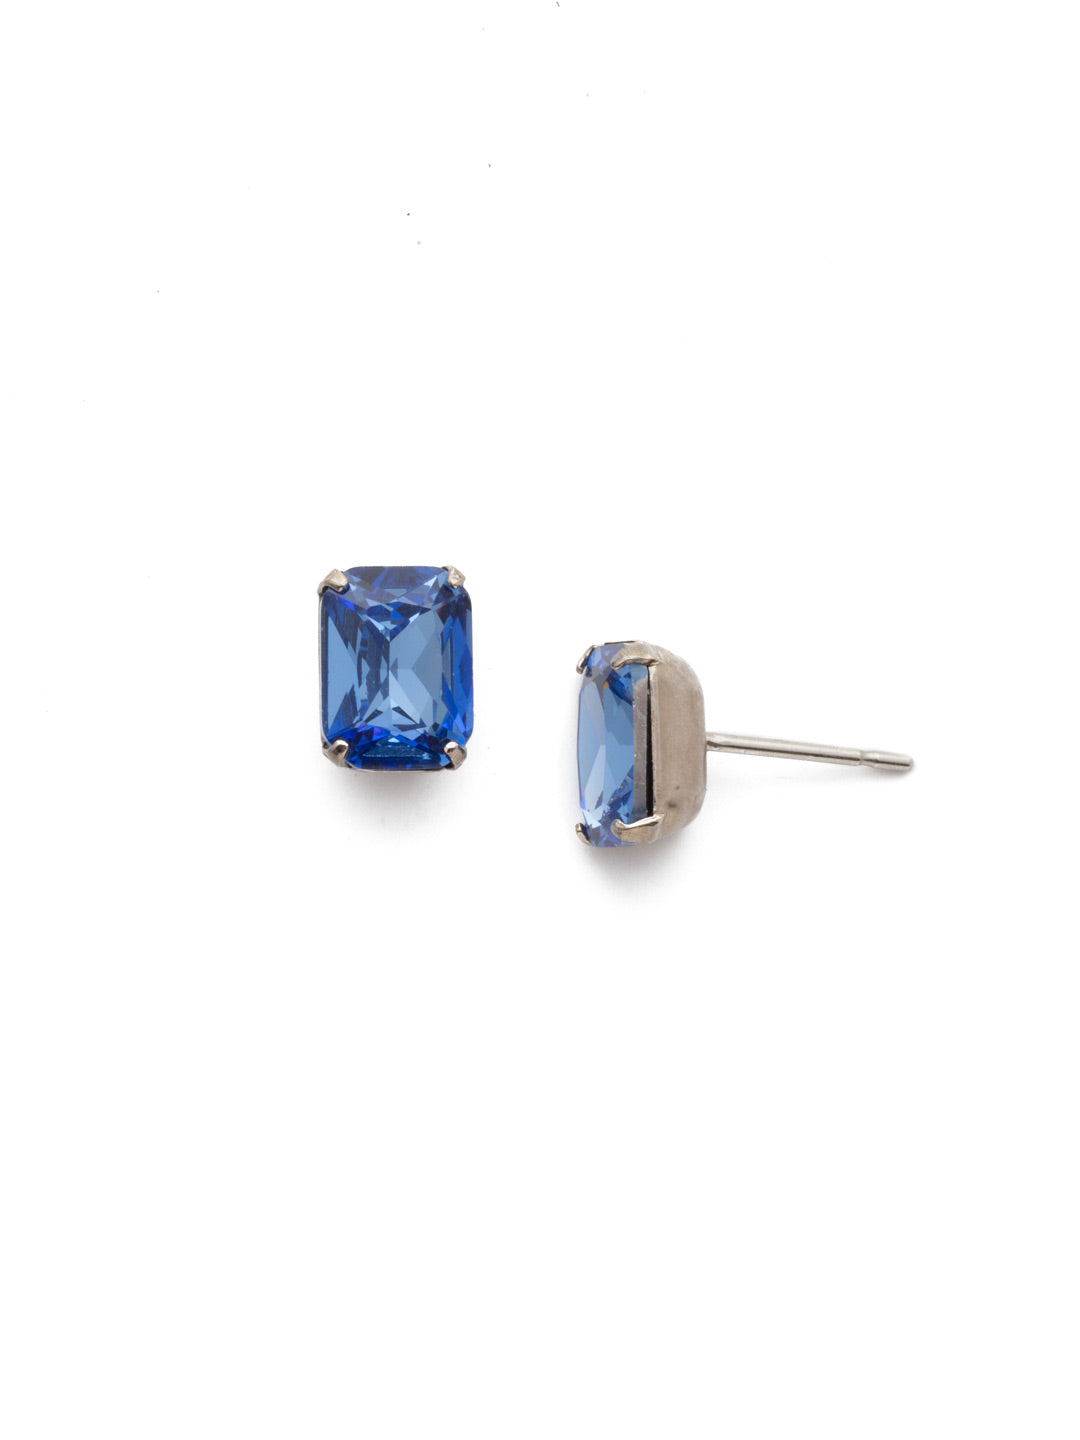 Mini Emerald Cut Stud Earrings - EBY42ASSAP